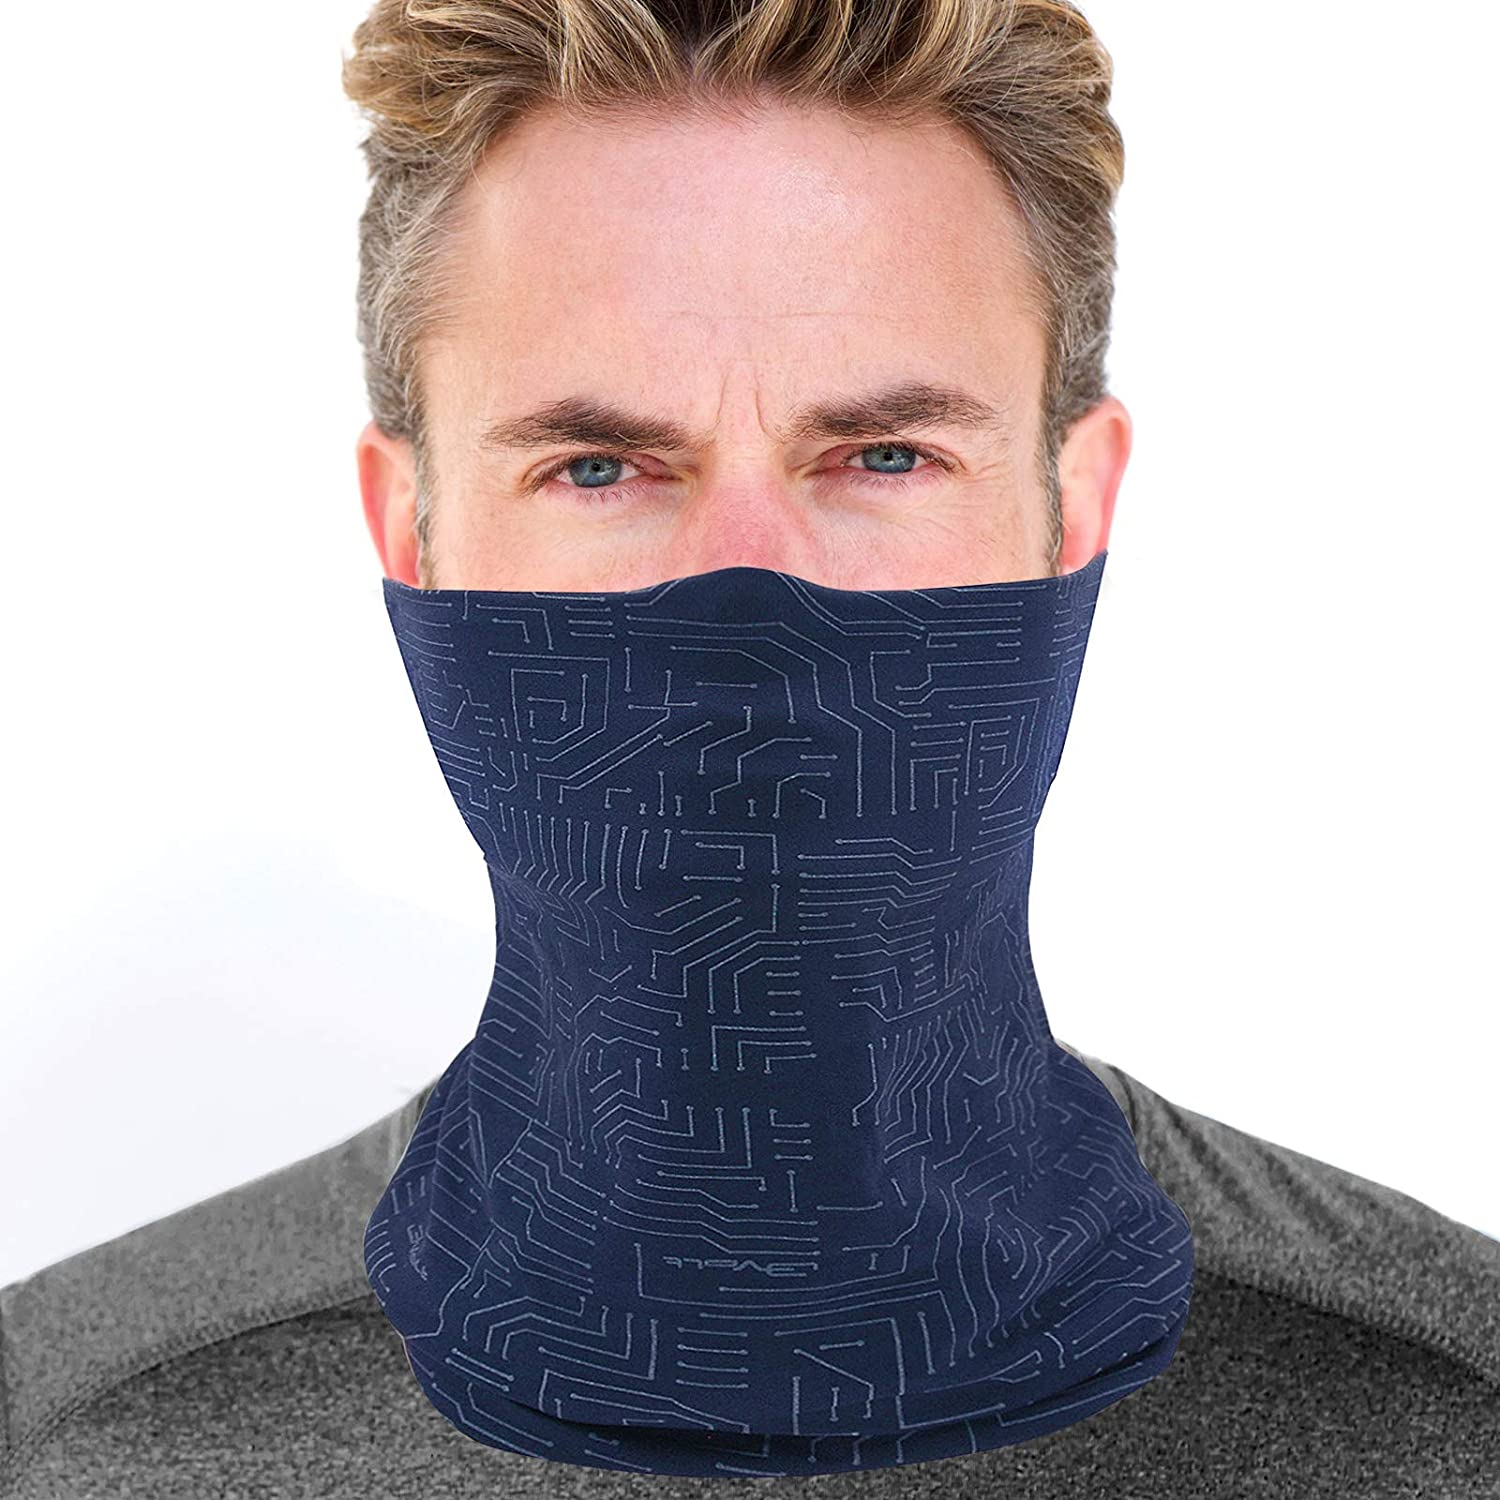 Fishing Sun Tube Face Mask UV Protection for Men Women - Aqua Cooling Neck Gaiter for Hunting Motorcycle Cycling in Summer - Dust Wind Shield Fast Dry Extreme Soft Feeling Dufont Tactel Fabric